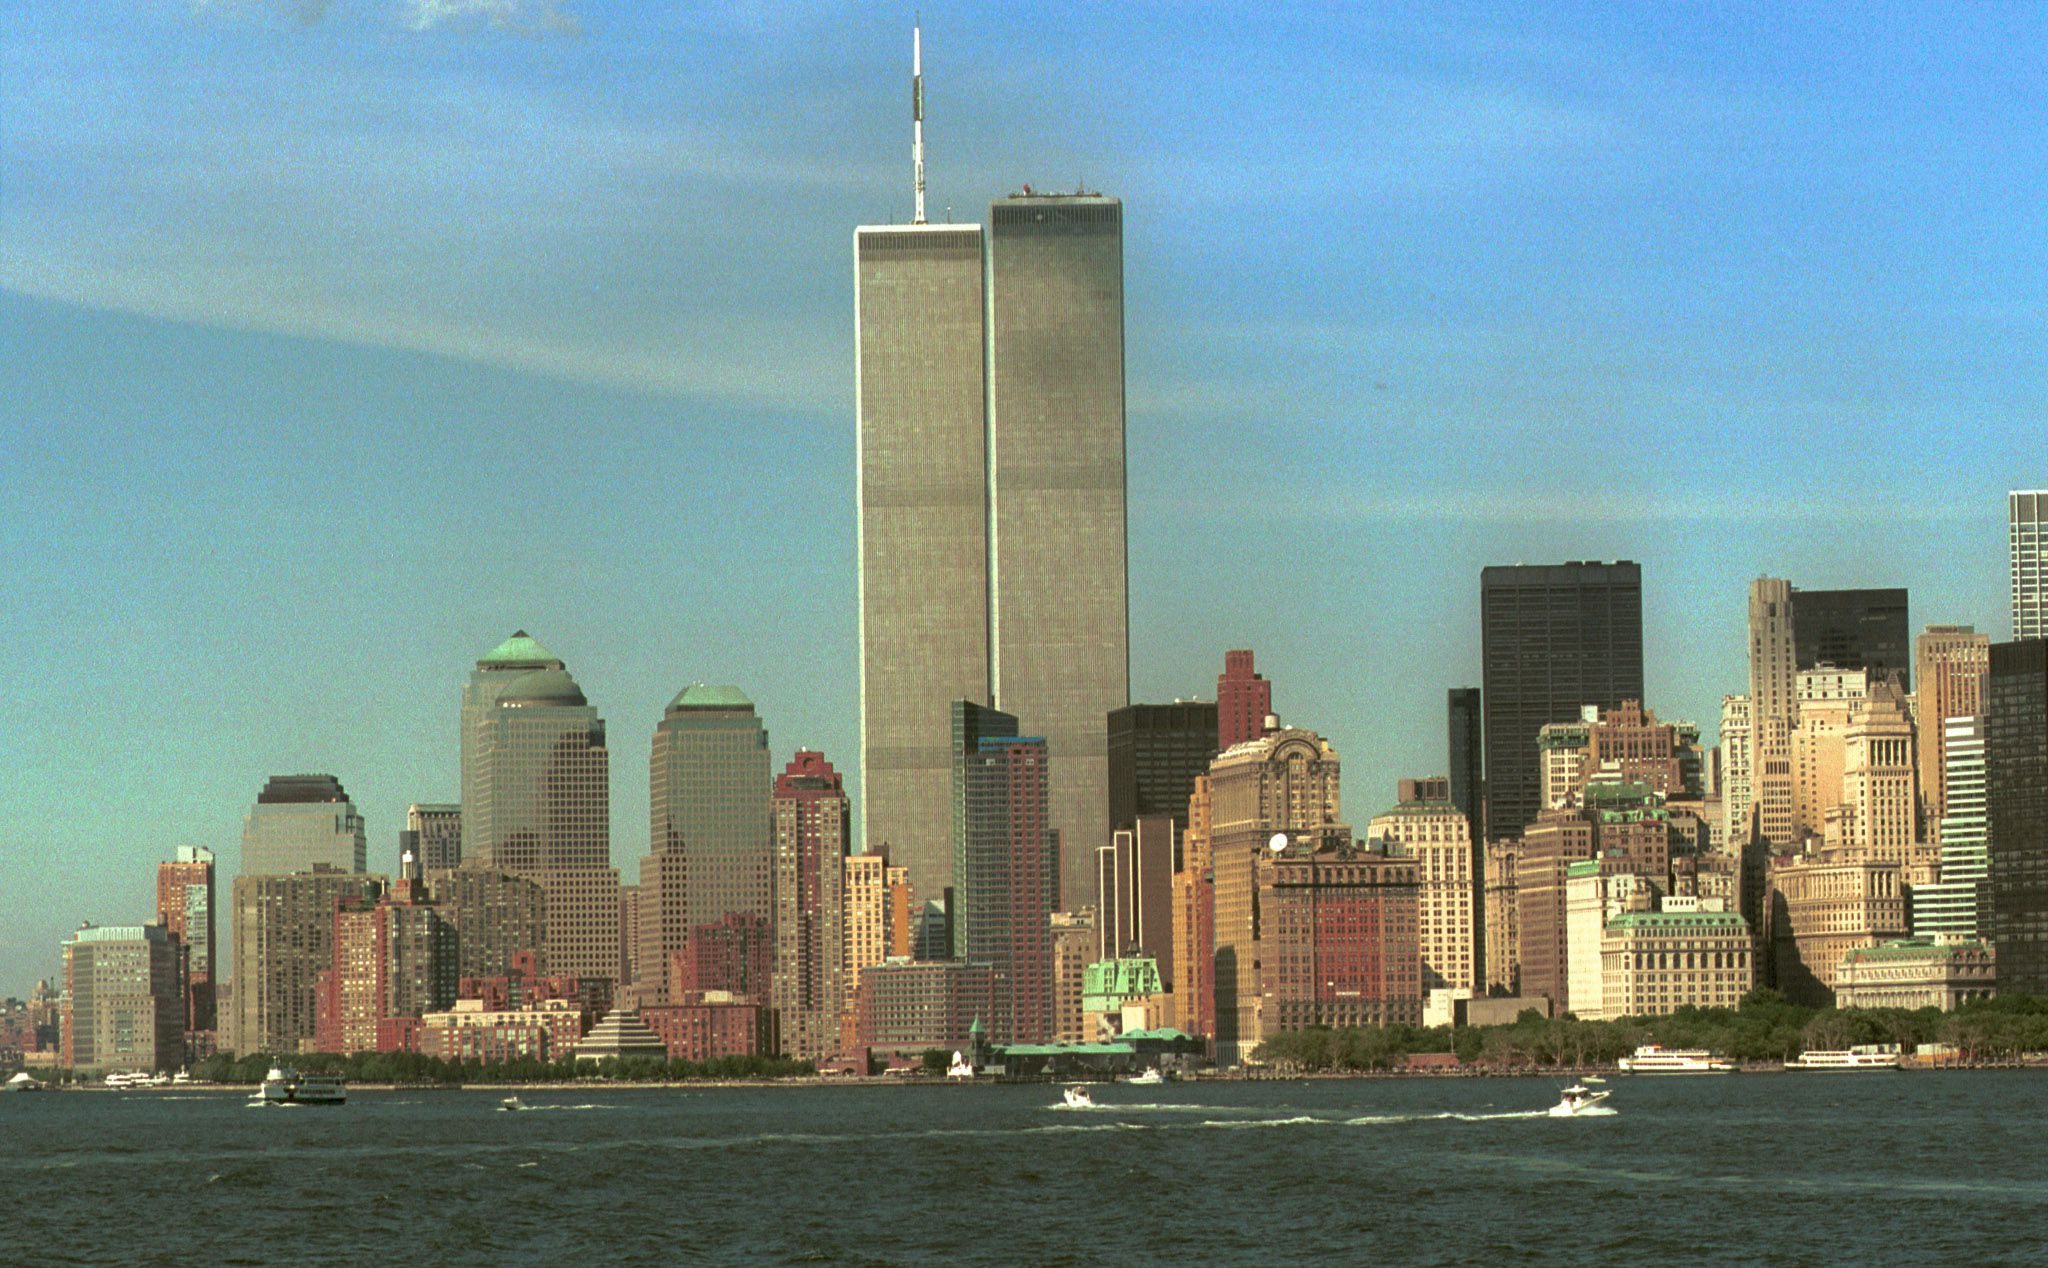 Pictures from the world trade center